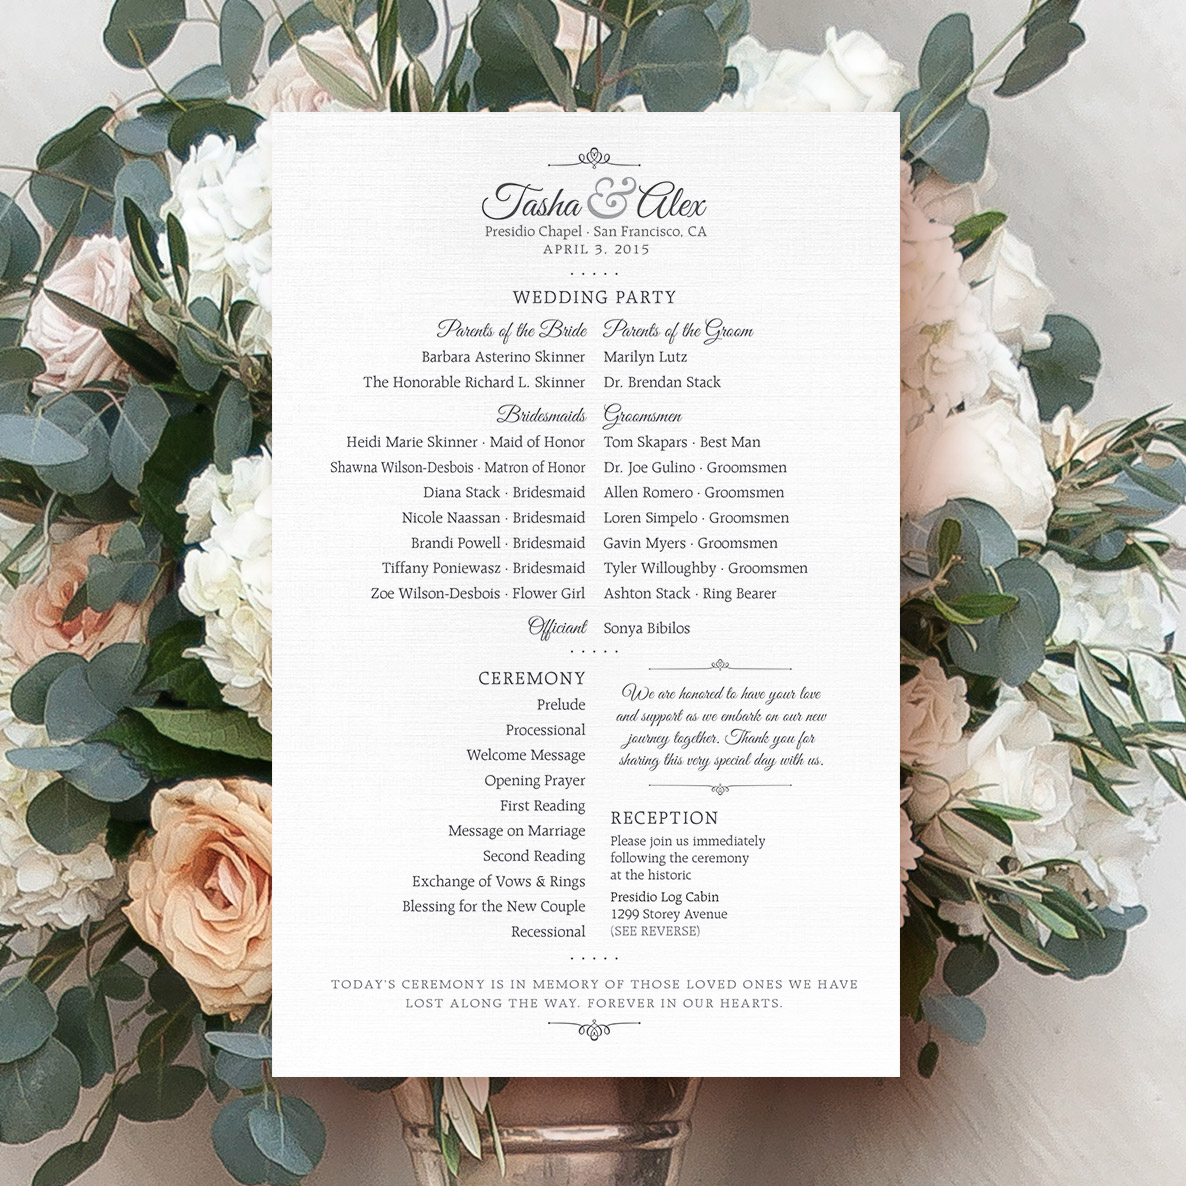 wedding ceremony program design with floral bouquet behind